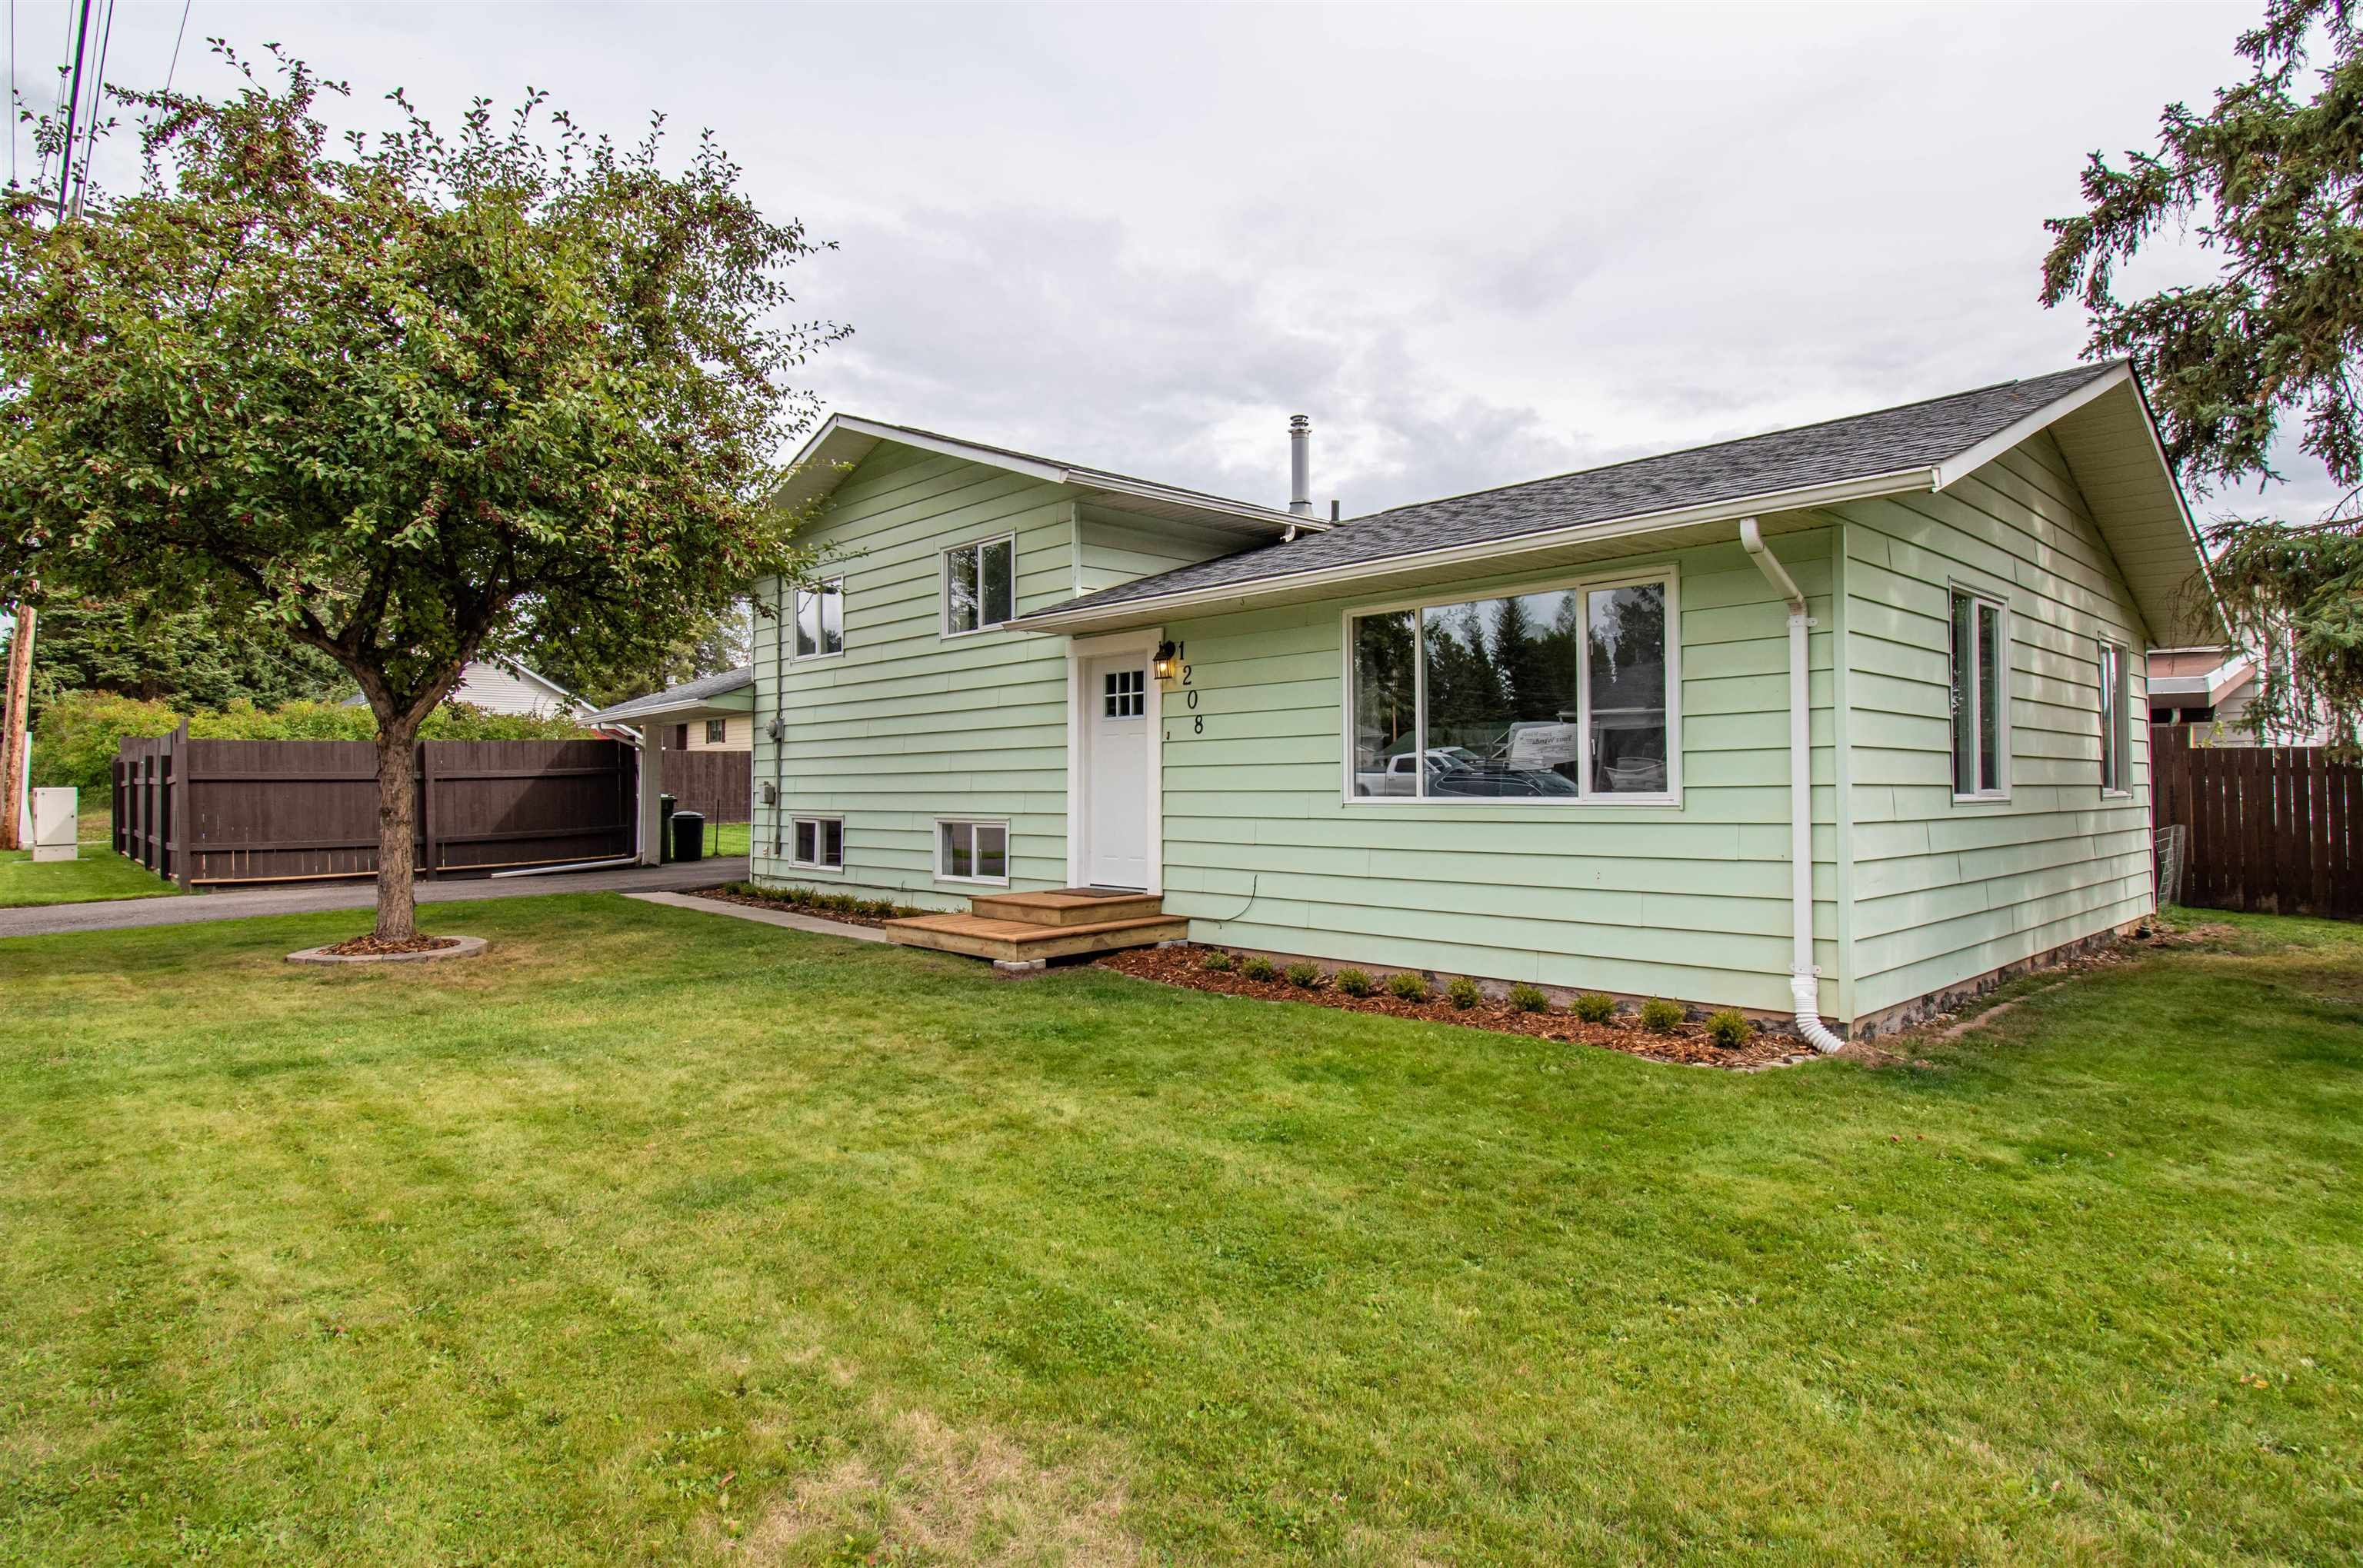 Main Photo: 1208 TORONTO Street in Smithers: Smithers - Town House for sale (Smithers And Area (Zone 54))  : MLS®# R2616091